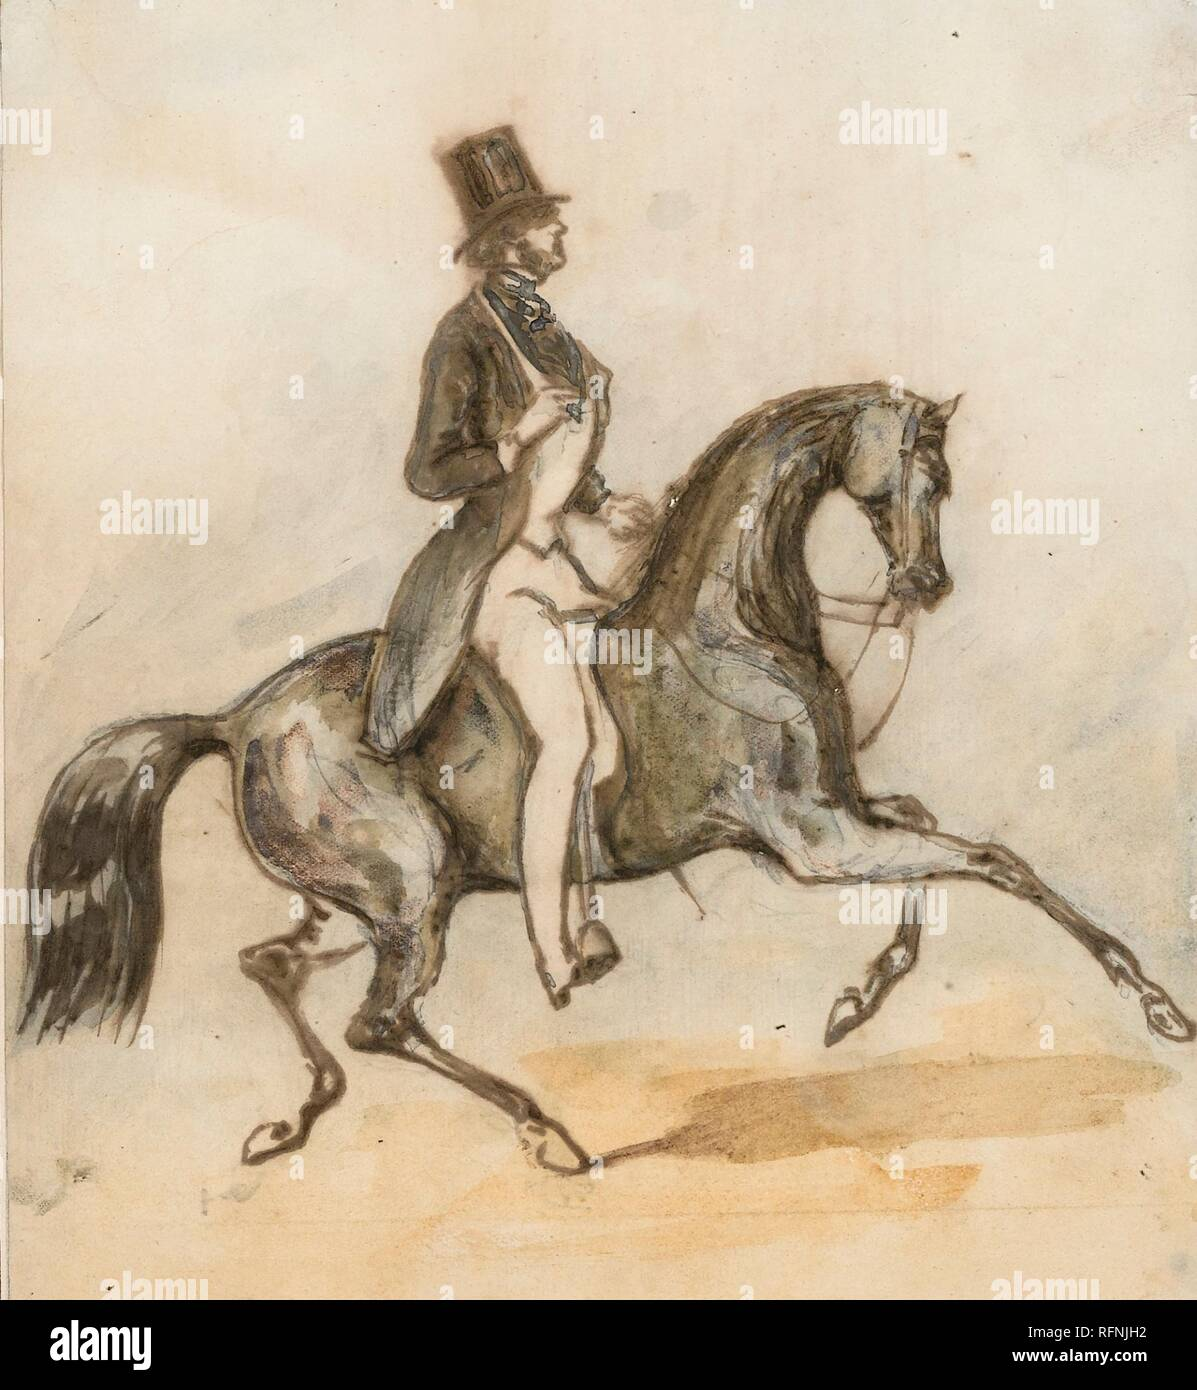 Constantin-Ernest-Adolphe-Hyacinthe Guys 1802 - 1892 PRESUMED PORTRAIT OF THE COMTE D'ORSAY RIDING A HORSE.jpg - RFNJH2 - Stock Image